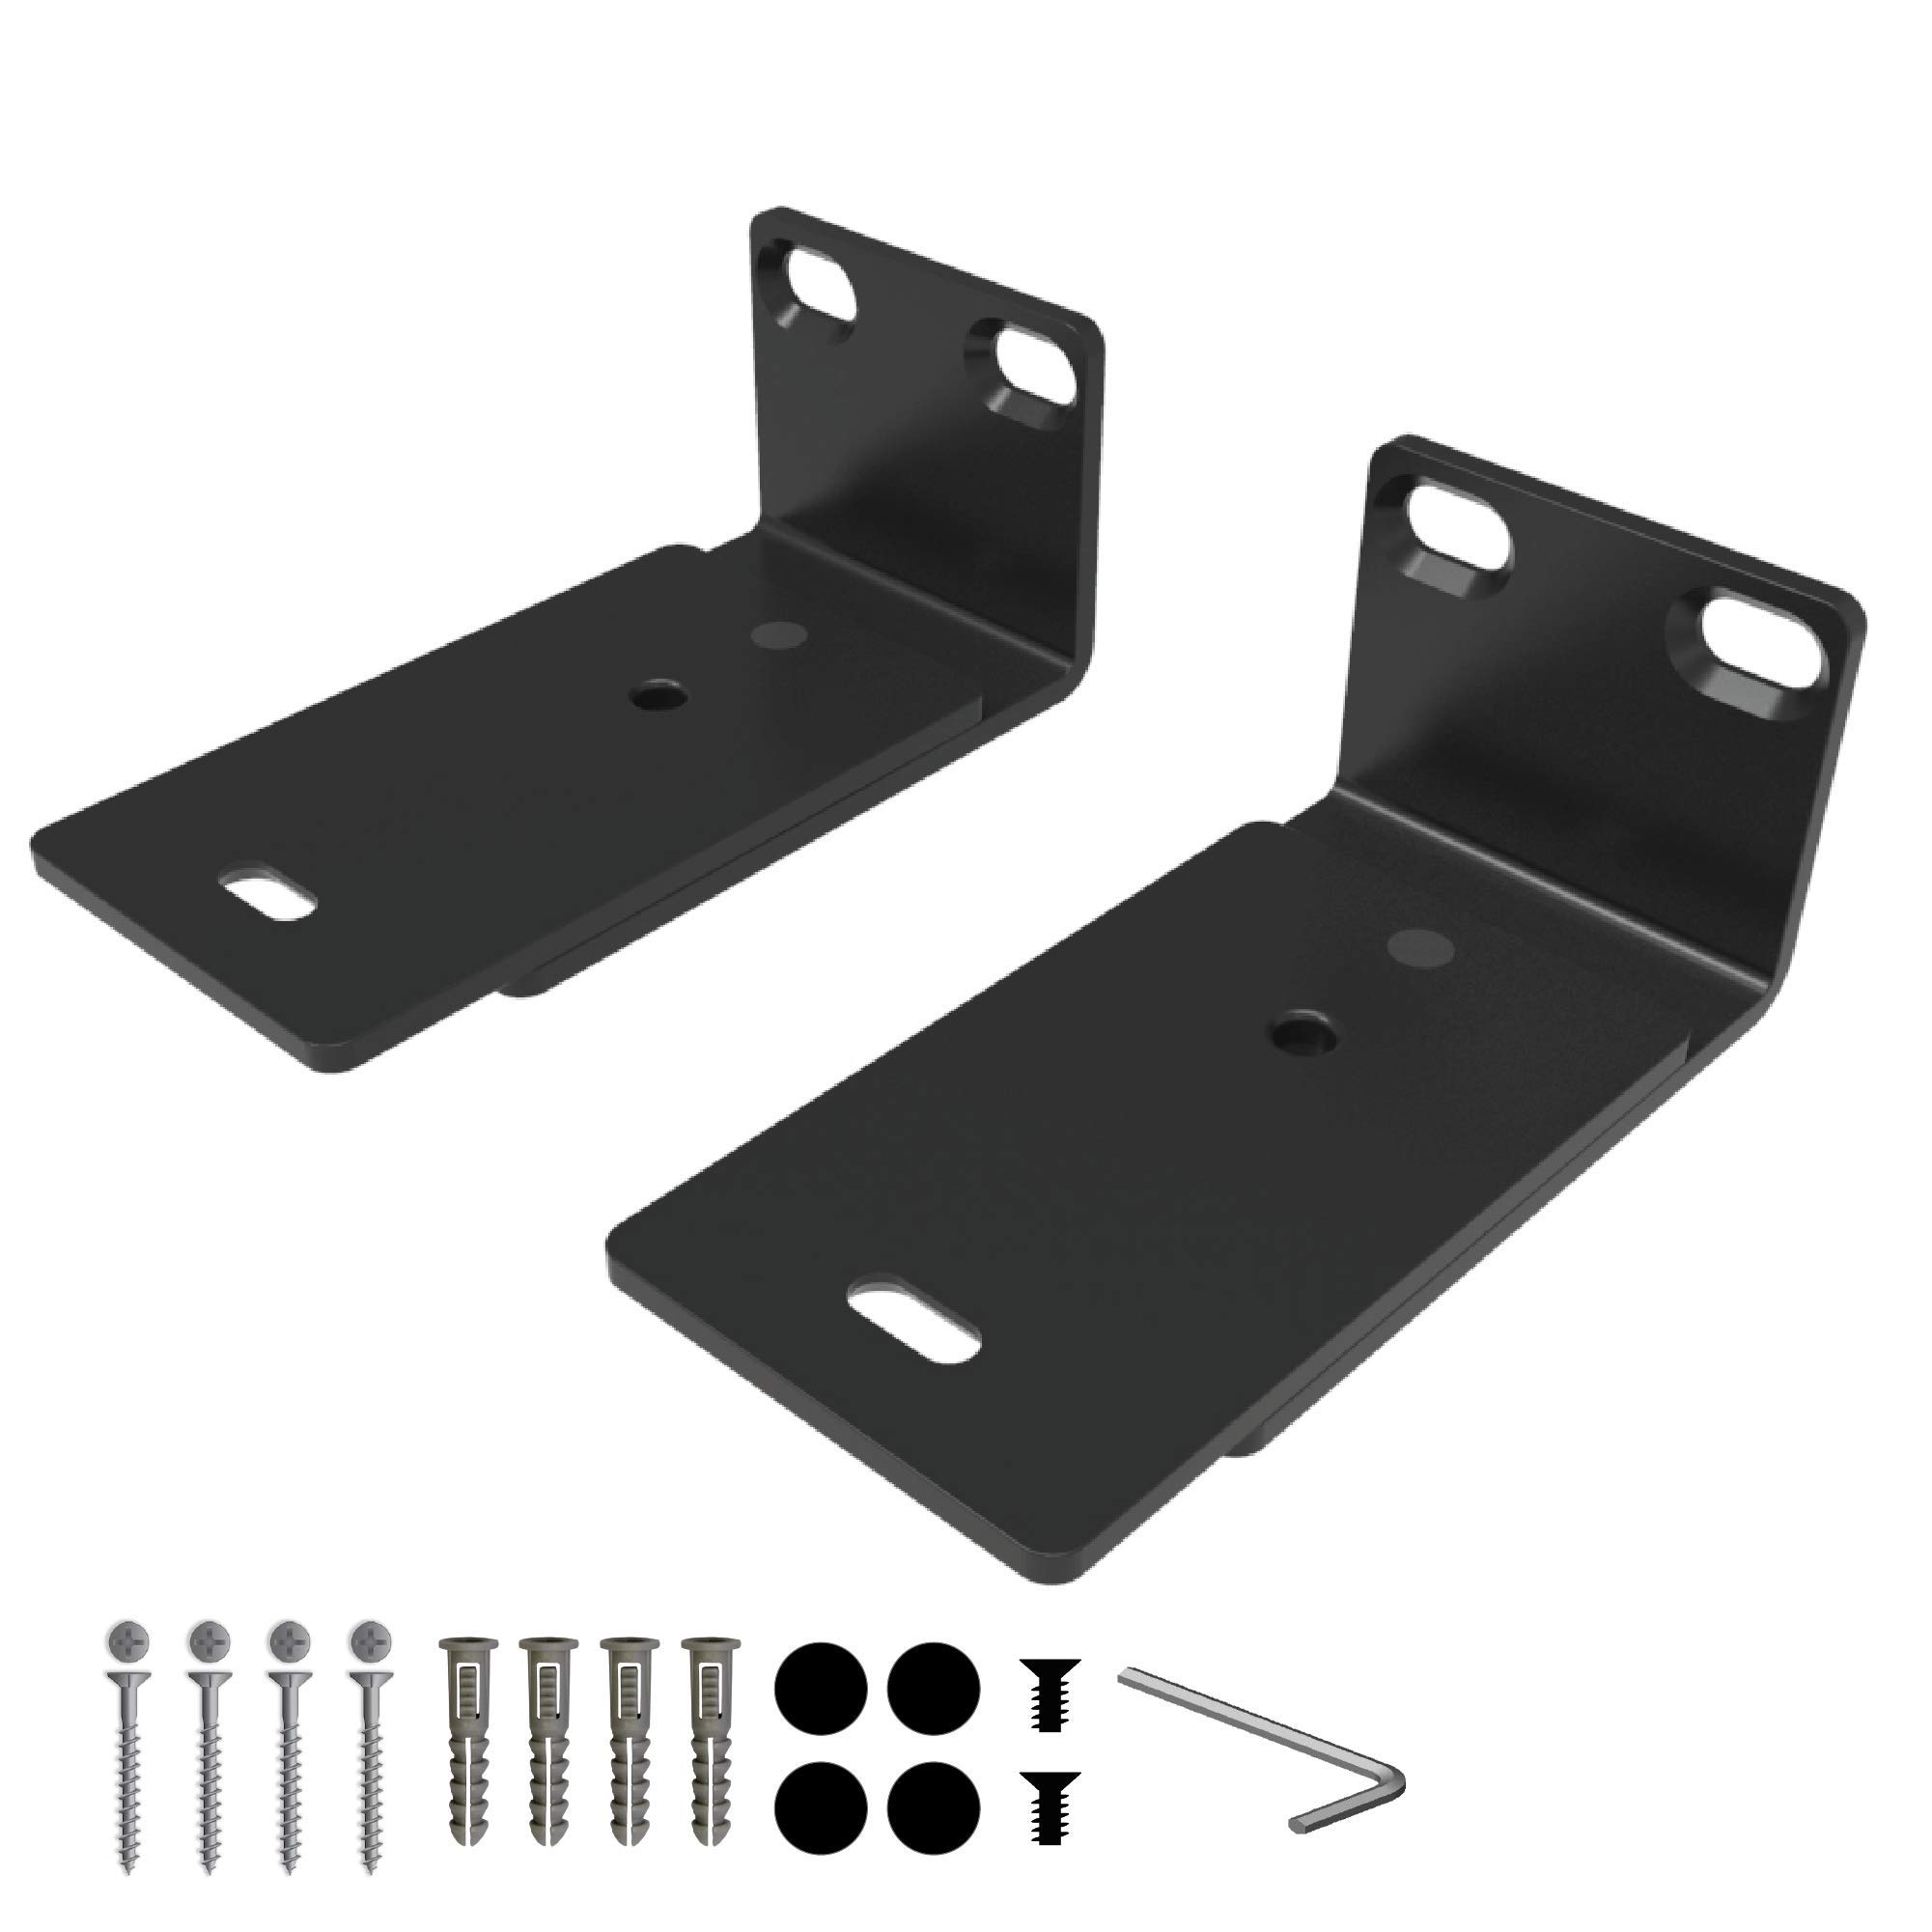 Soundbar 500/700 & Soundtouch 300 Adjustable Wall Mount Kit for Bose Sound bar 500 & 700 + Sound Touch 300 with Mounting Accessories, Designed in The UK by Soundbass by Sound bass